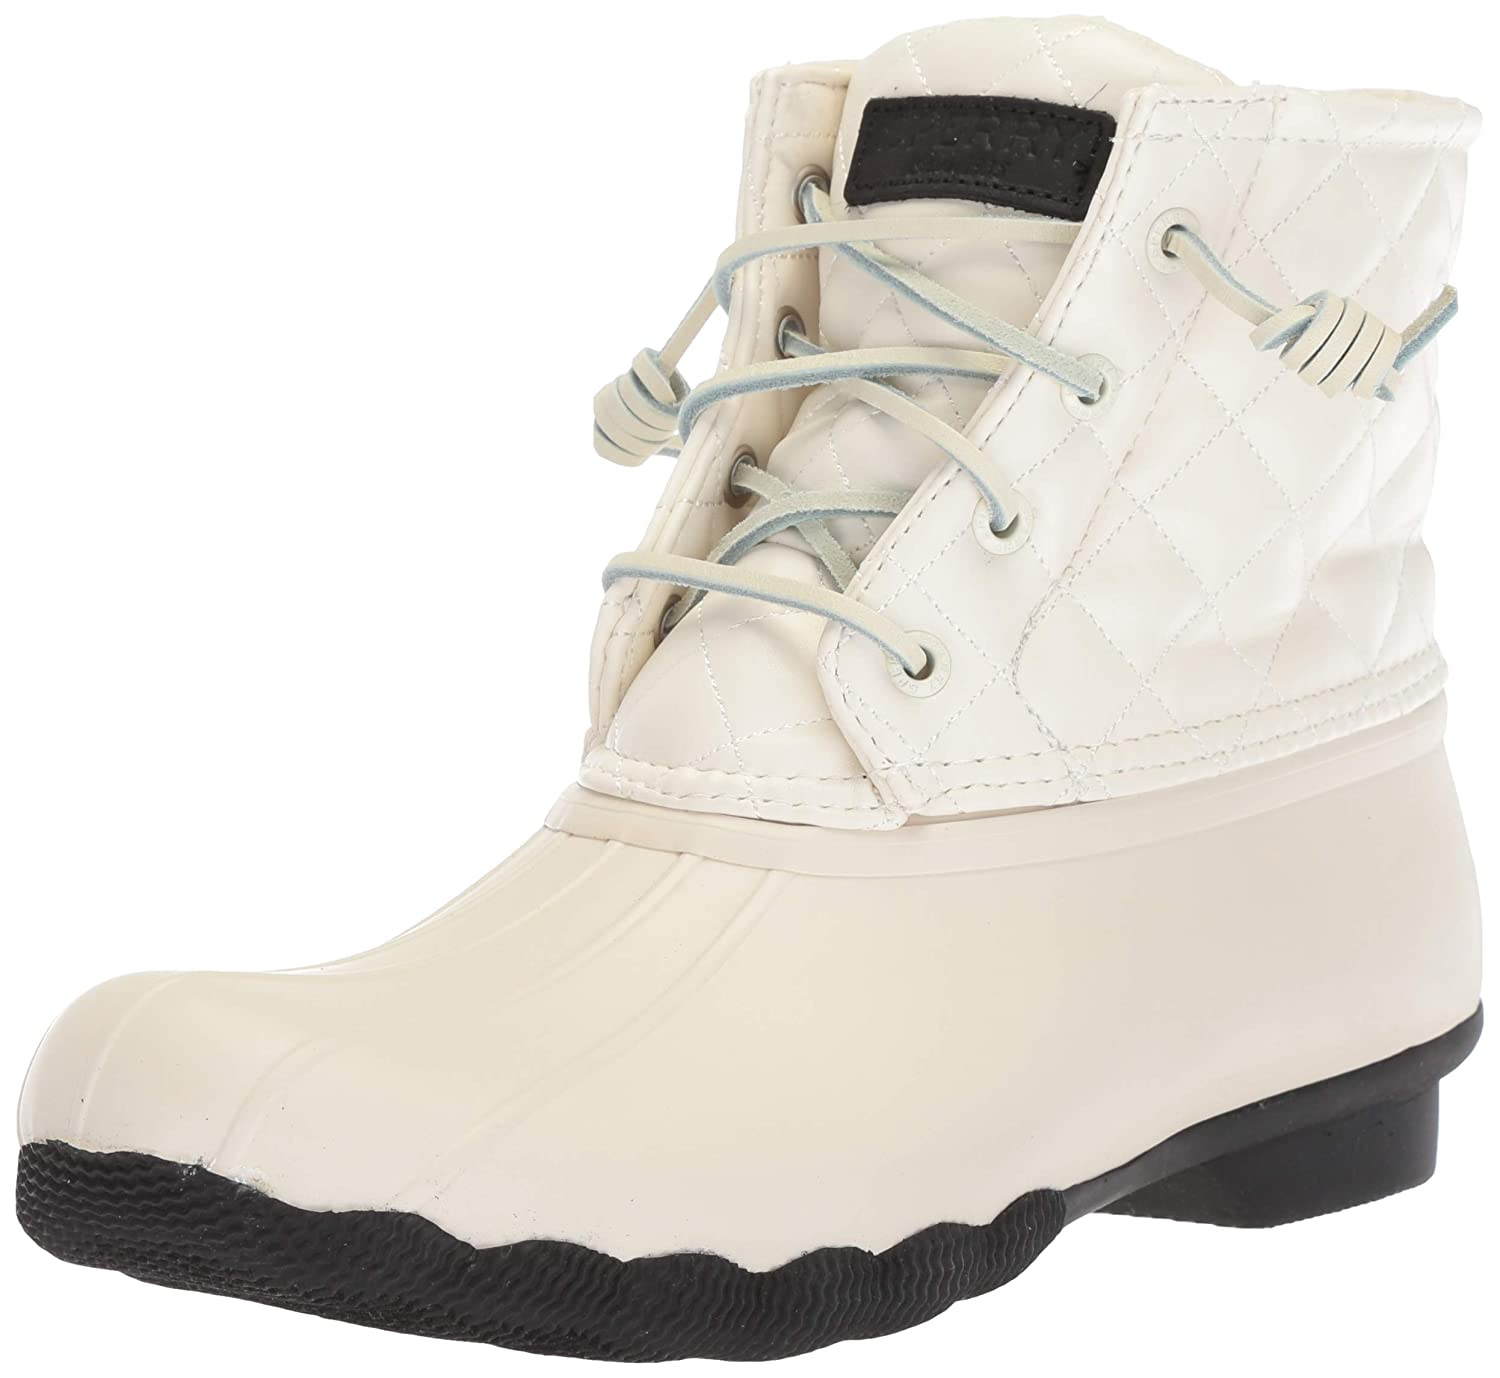 Saltwater Quilted Lux Rain Boot, Ivory